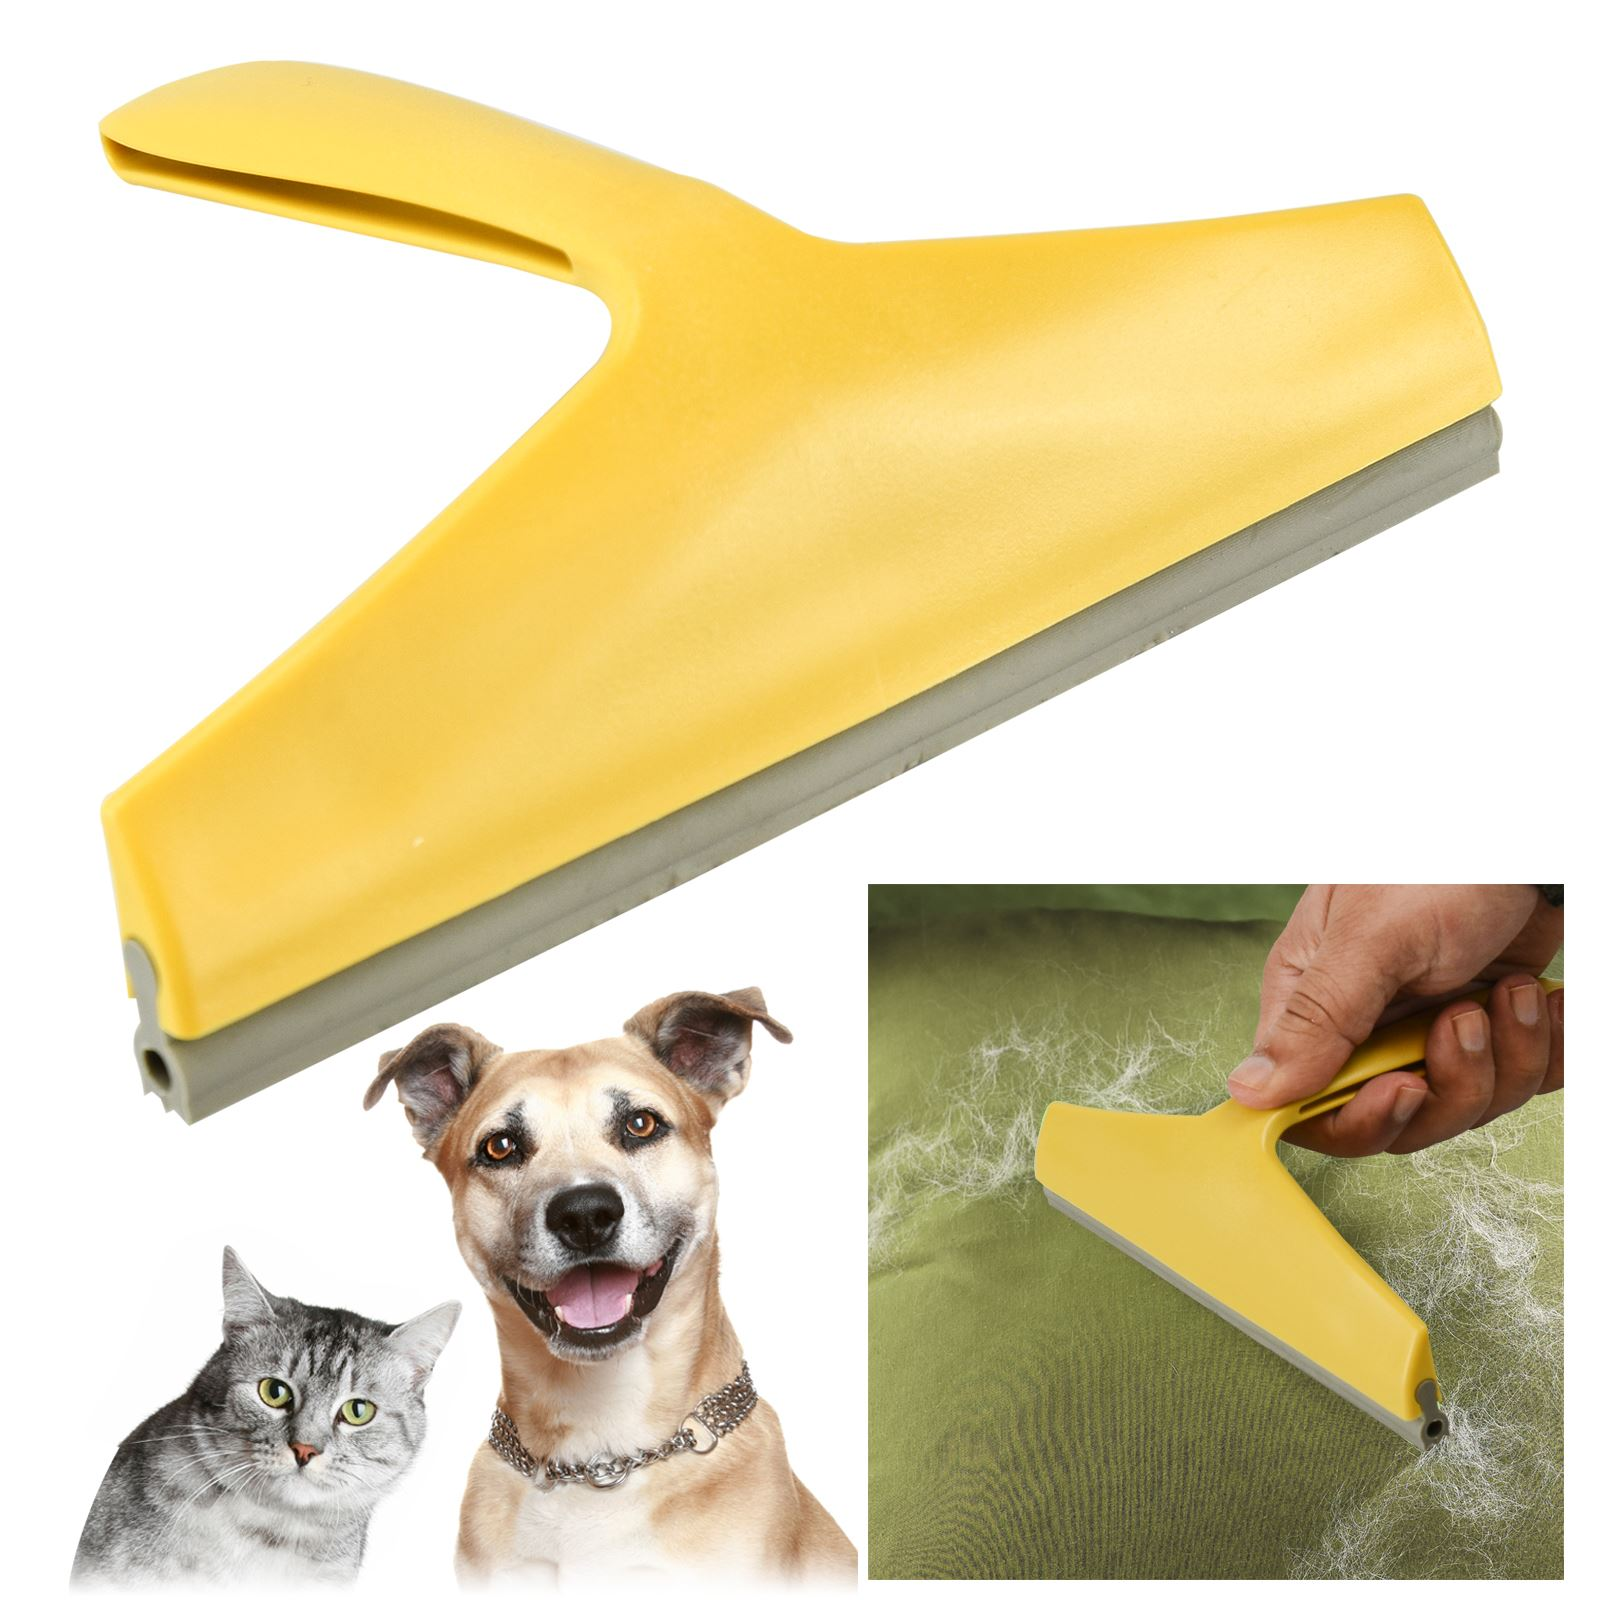 pet hair remover home car fabric upholstery carpet seats rubber blade comb brush ebay. Black Bedroom Furniture Sets. Home Design Ideas